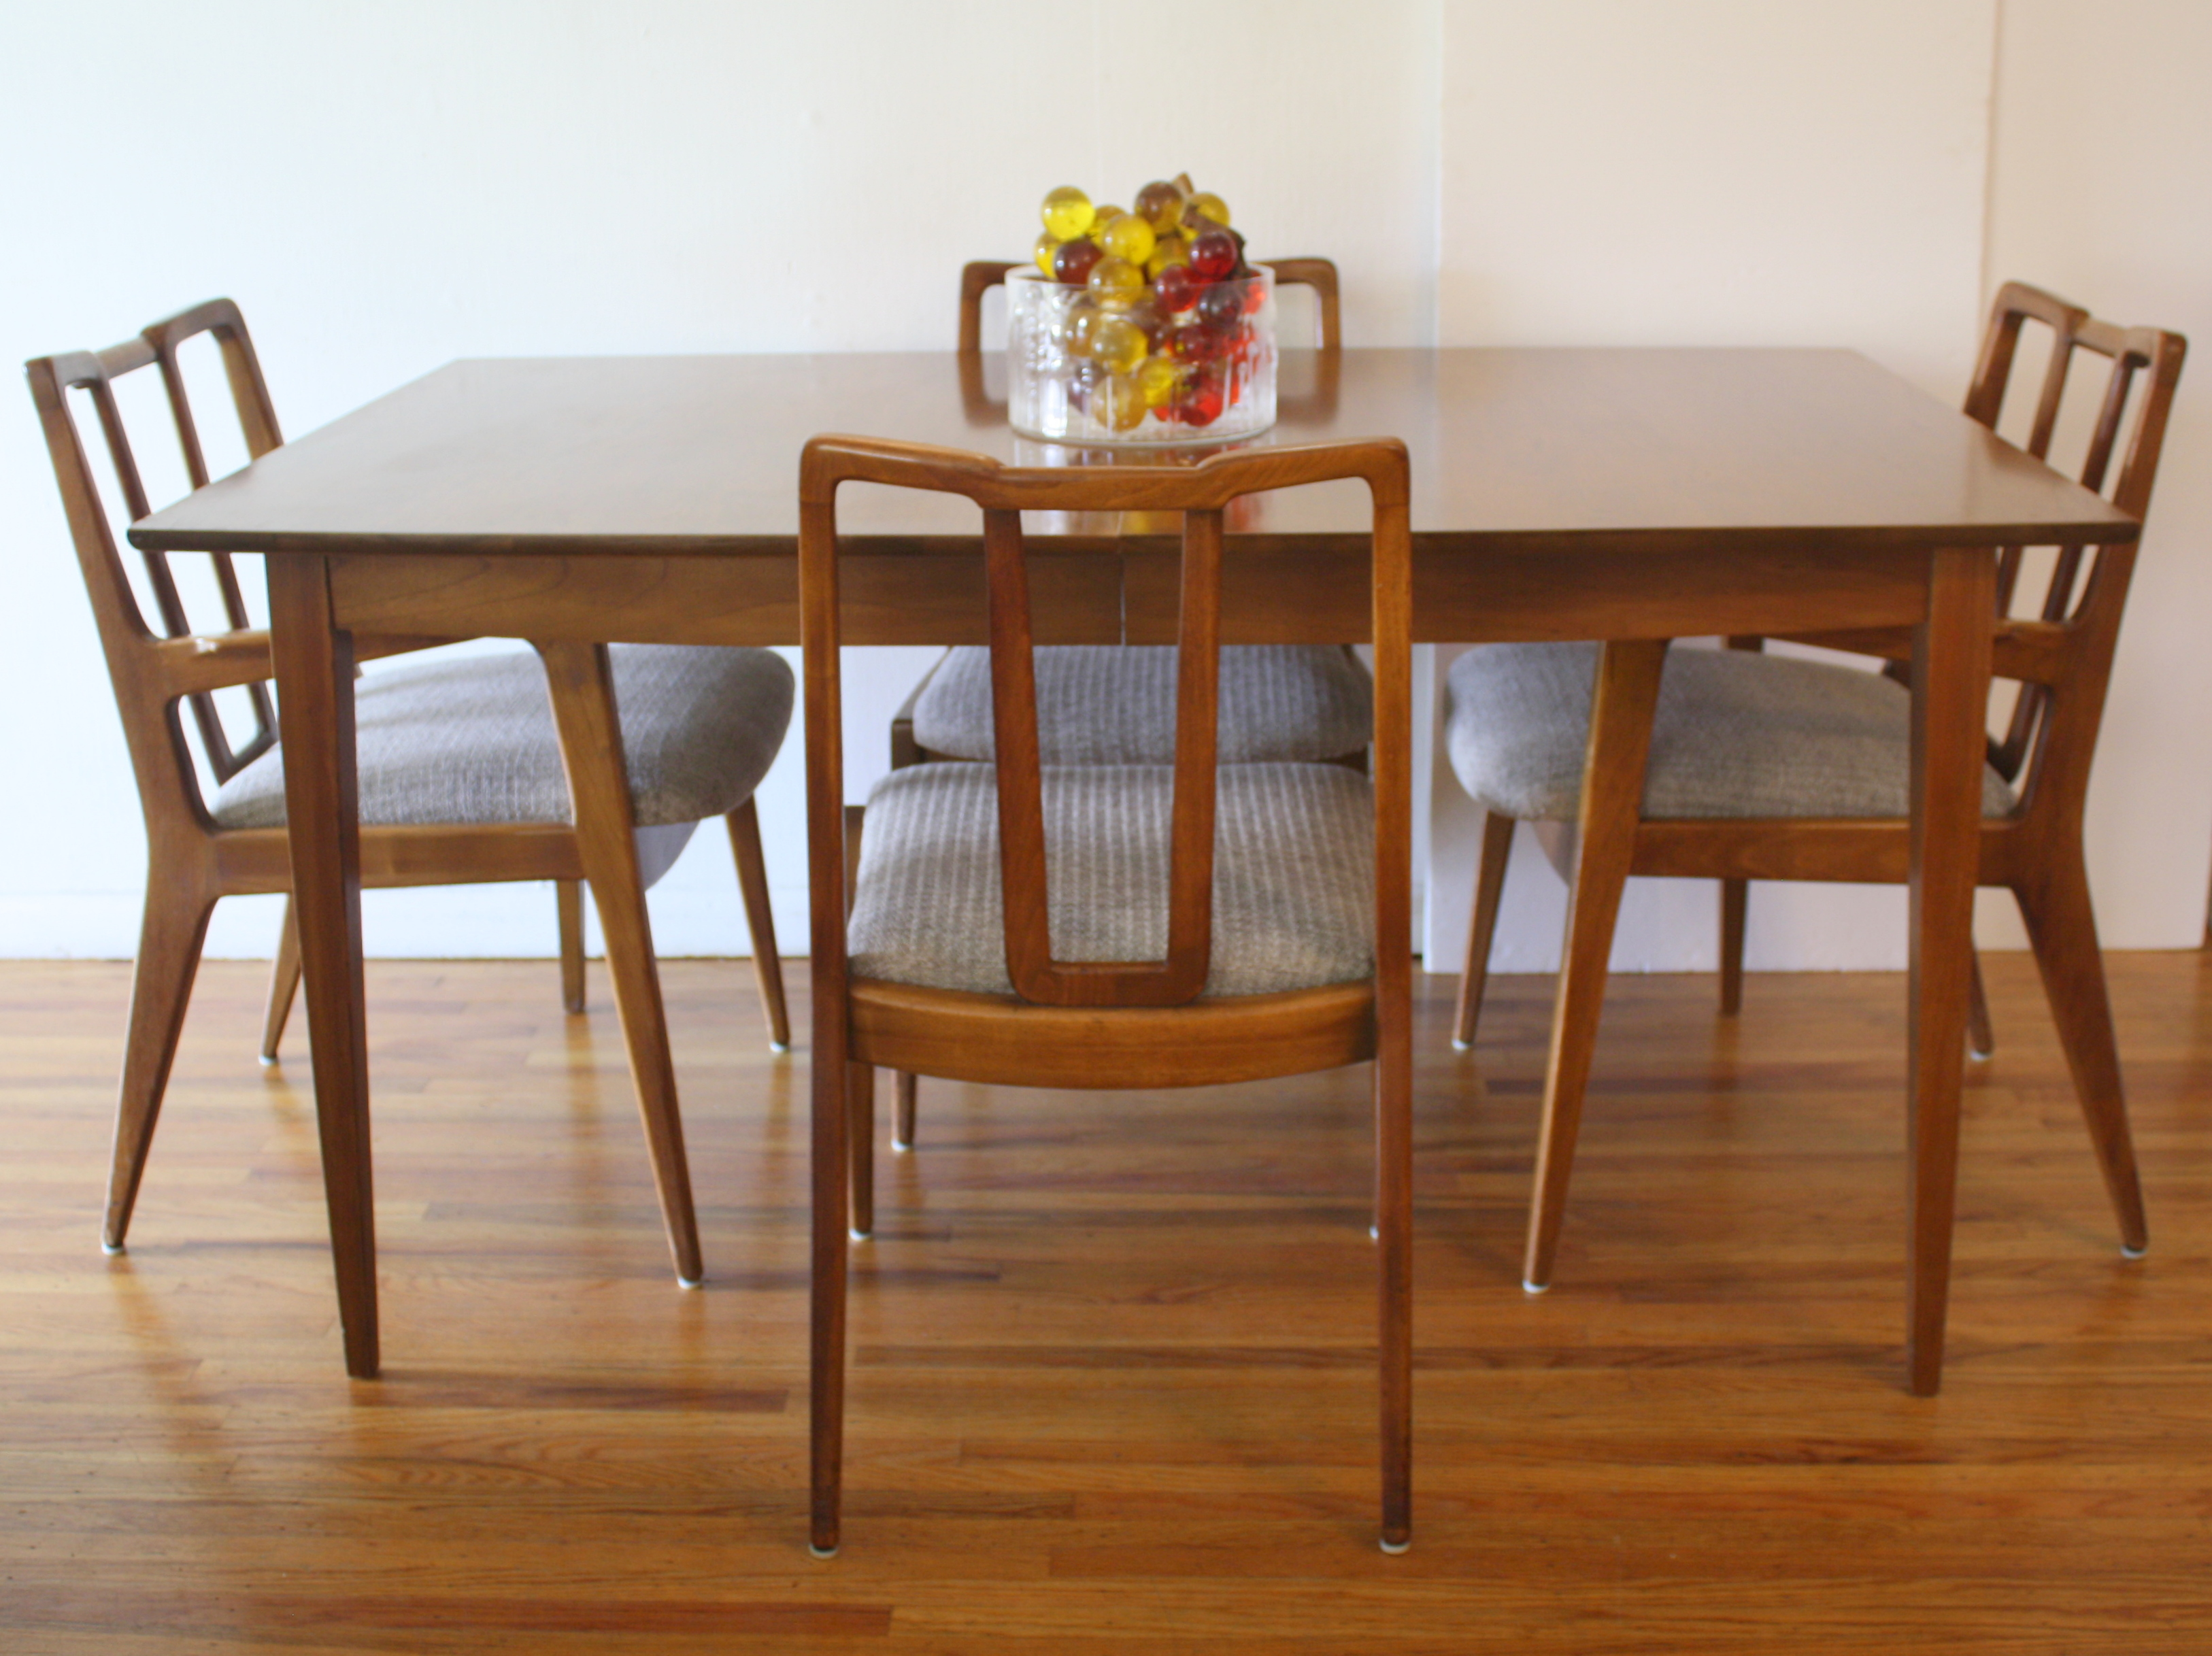 mcm dining table with John Stuart chairs 2 | Picked Vintage